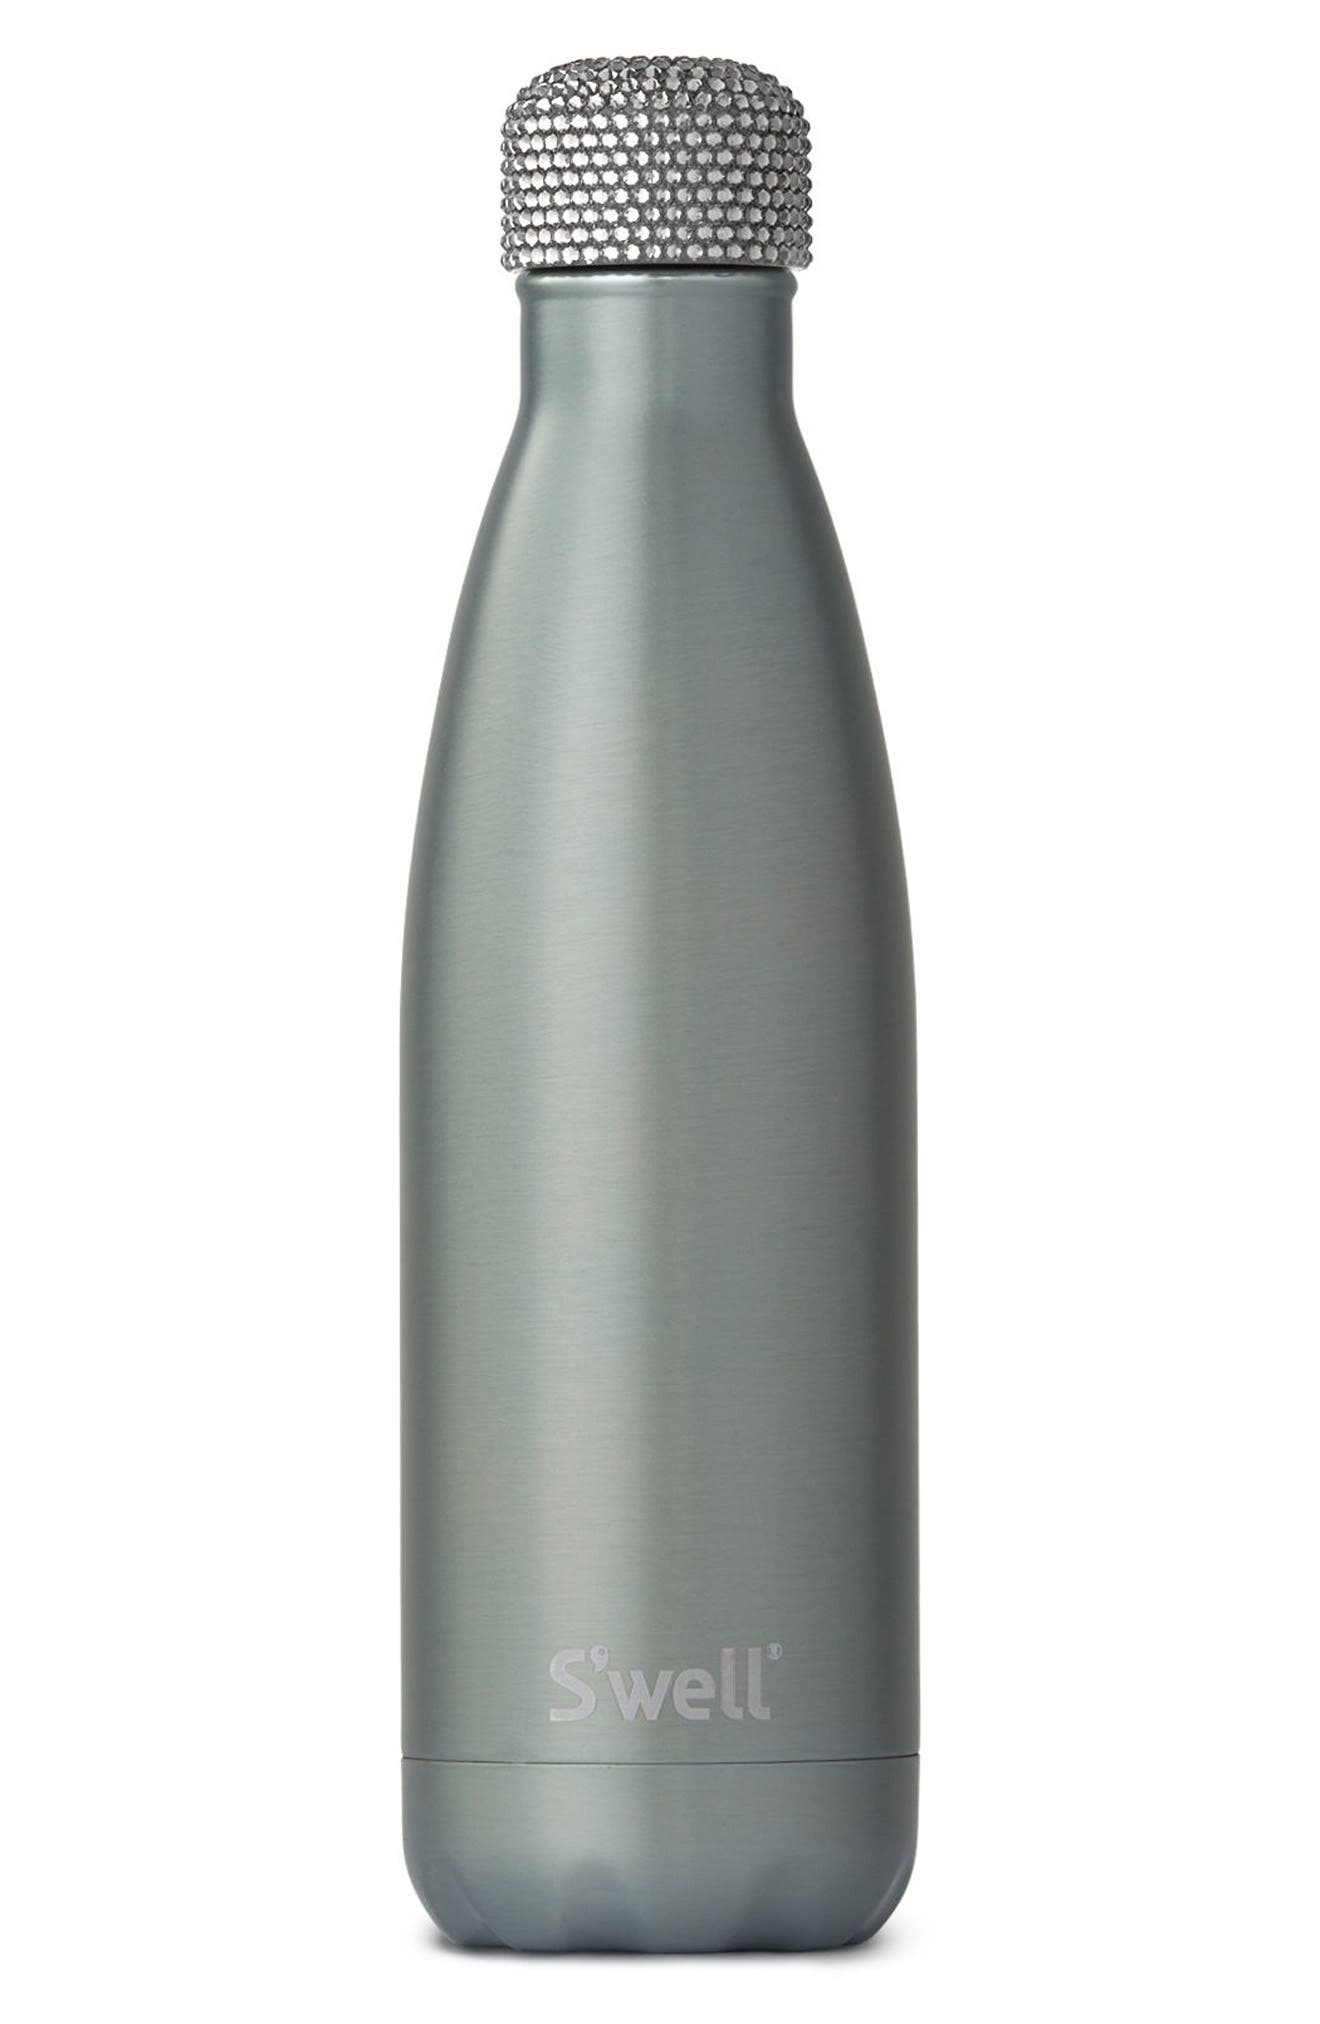 S'well Radiance Swarovski Crystal Water Bottle (Limited Edition)